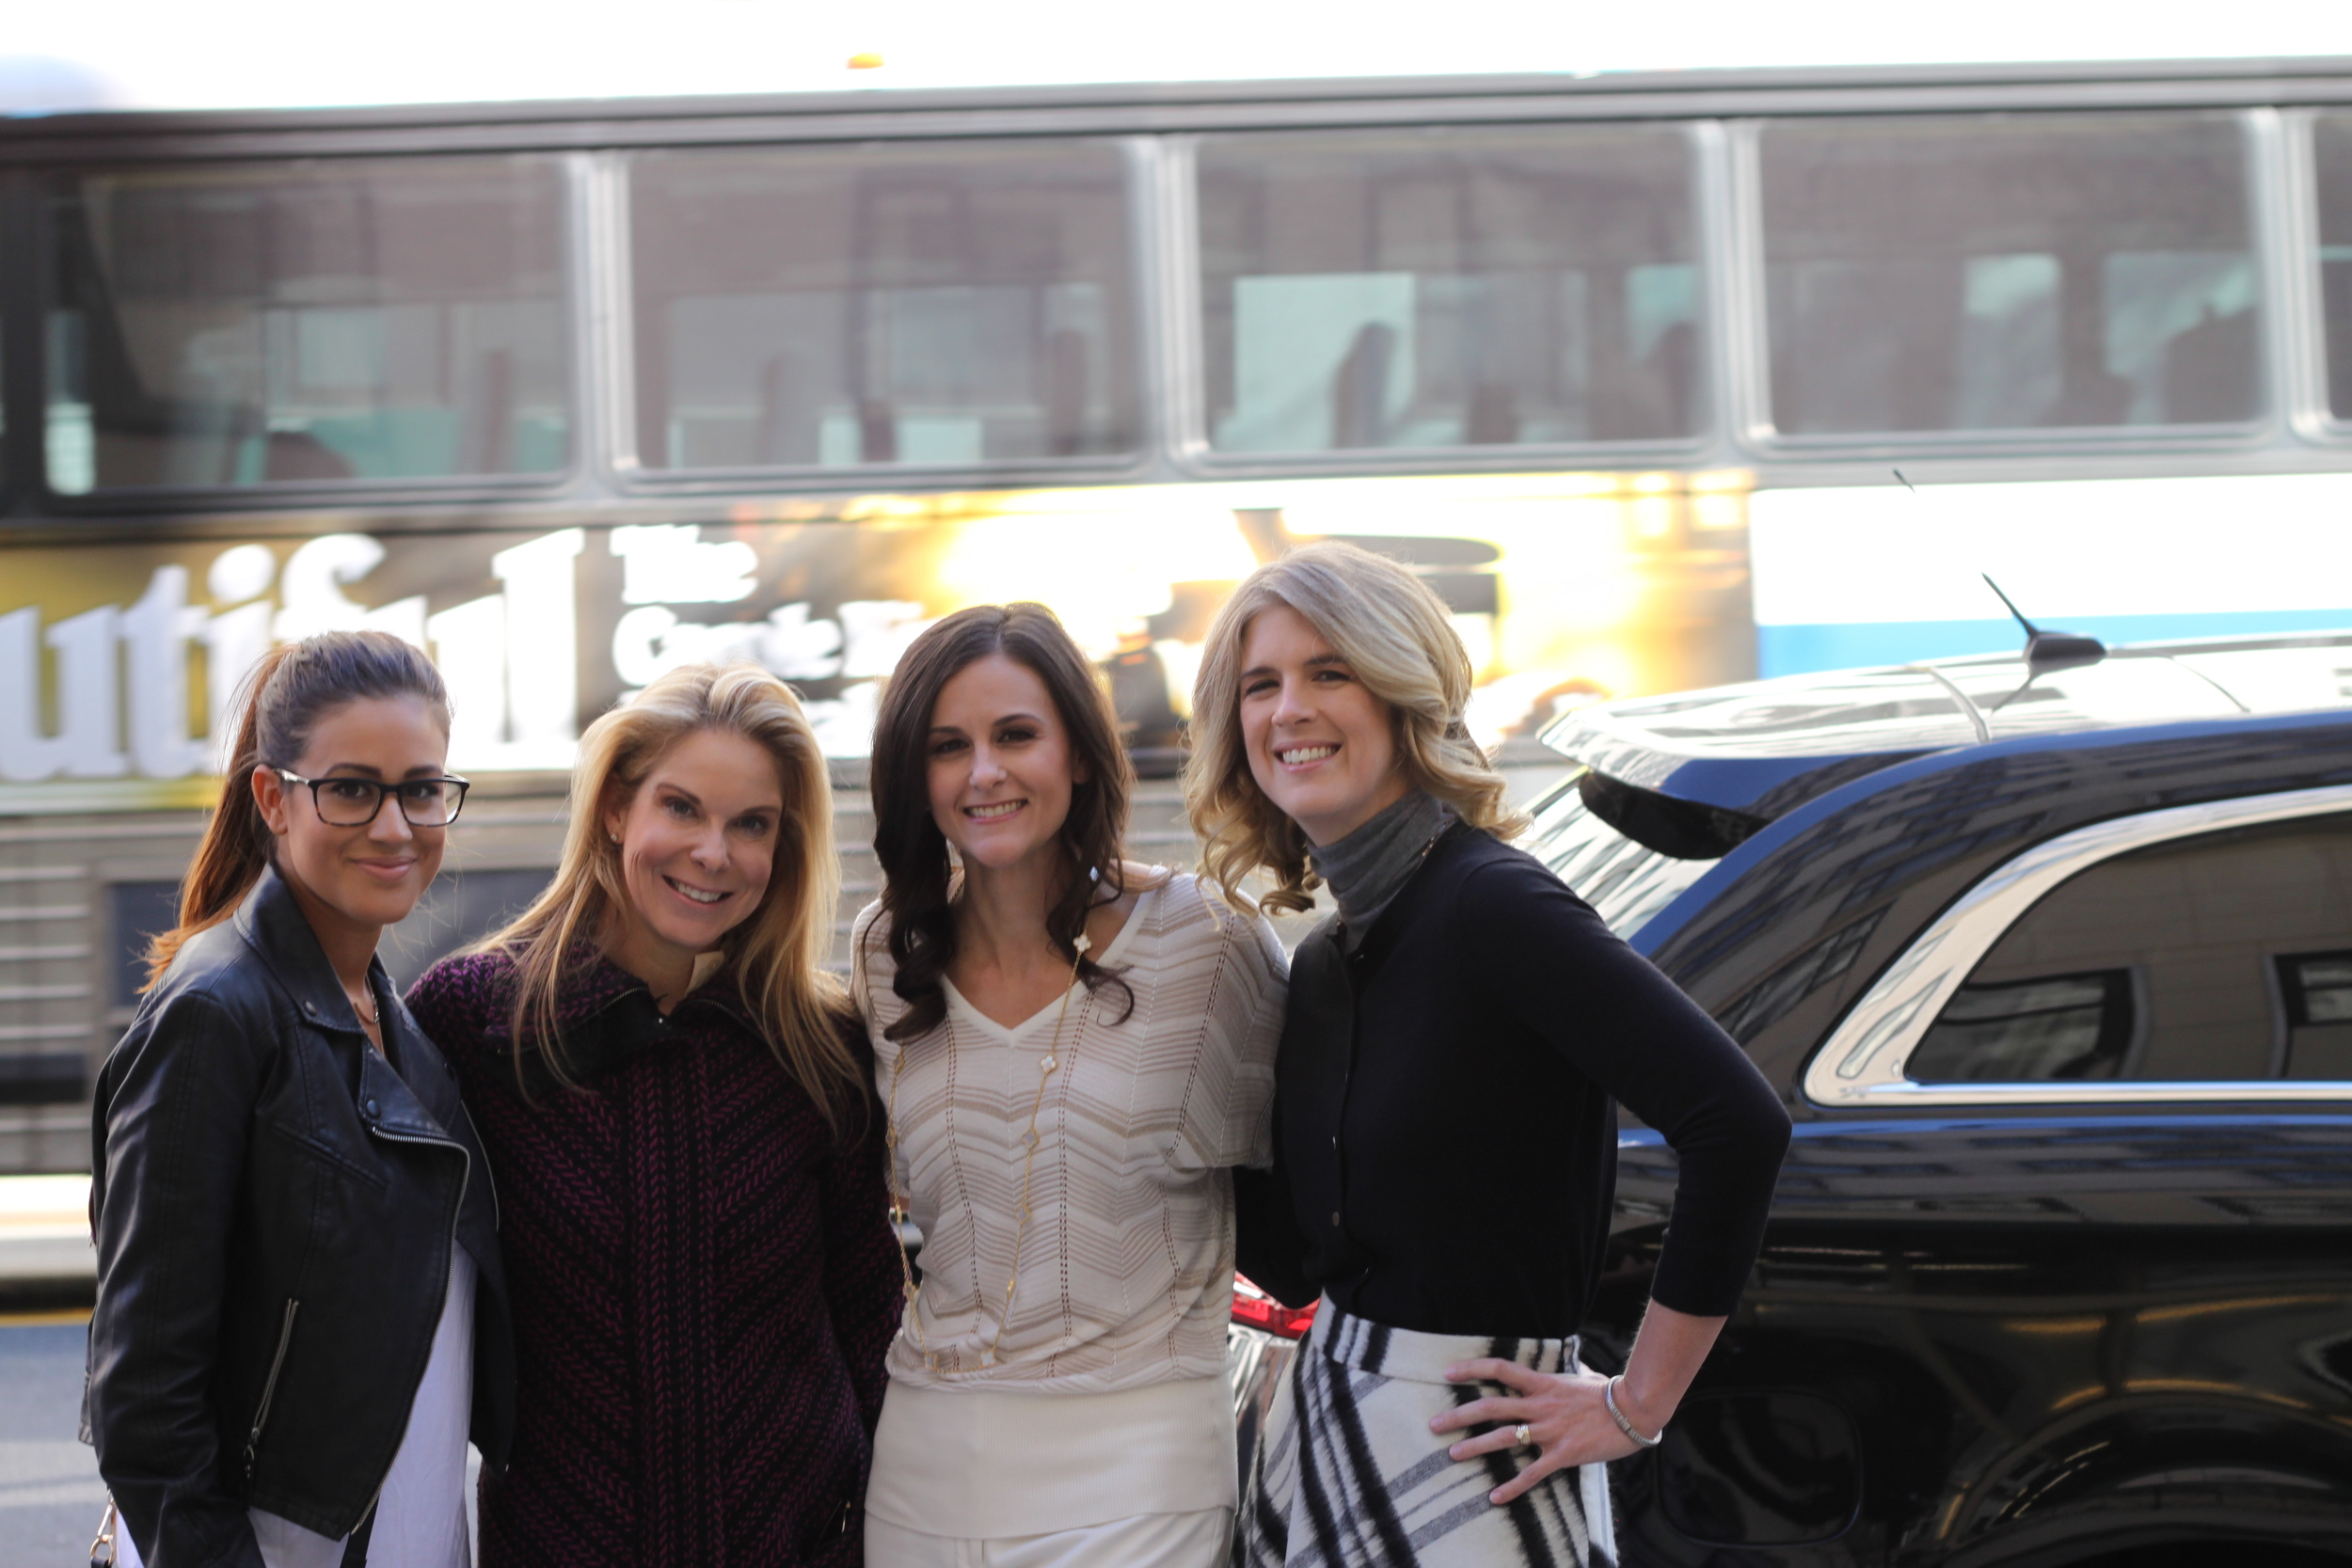 Left to Right - Me, Jen with  JJBPR.com , Kelly & Carol - founders of PREP Cosmetics.